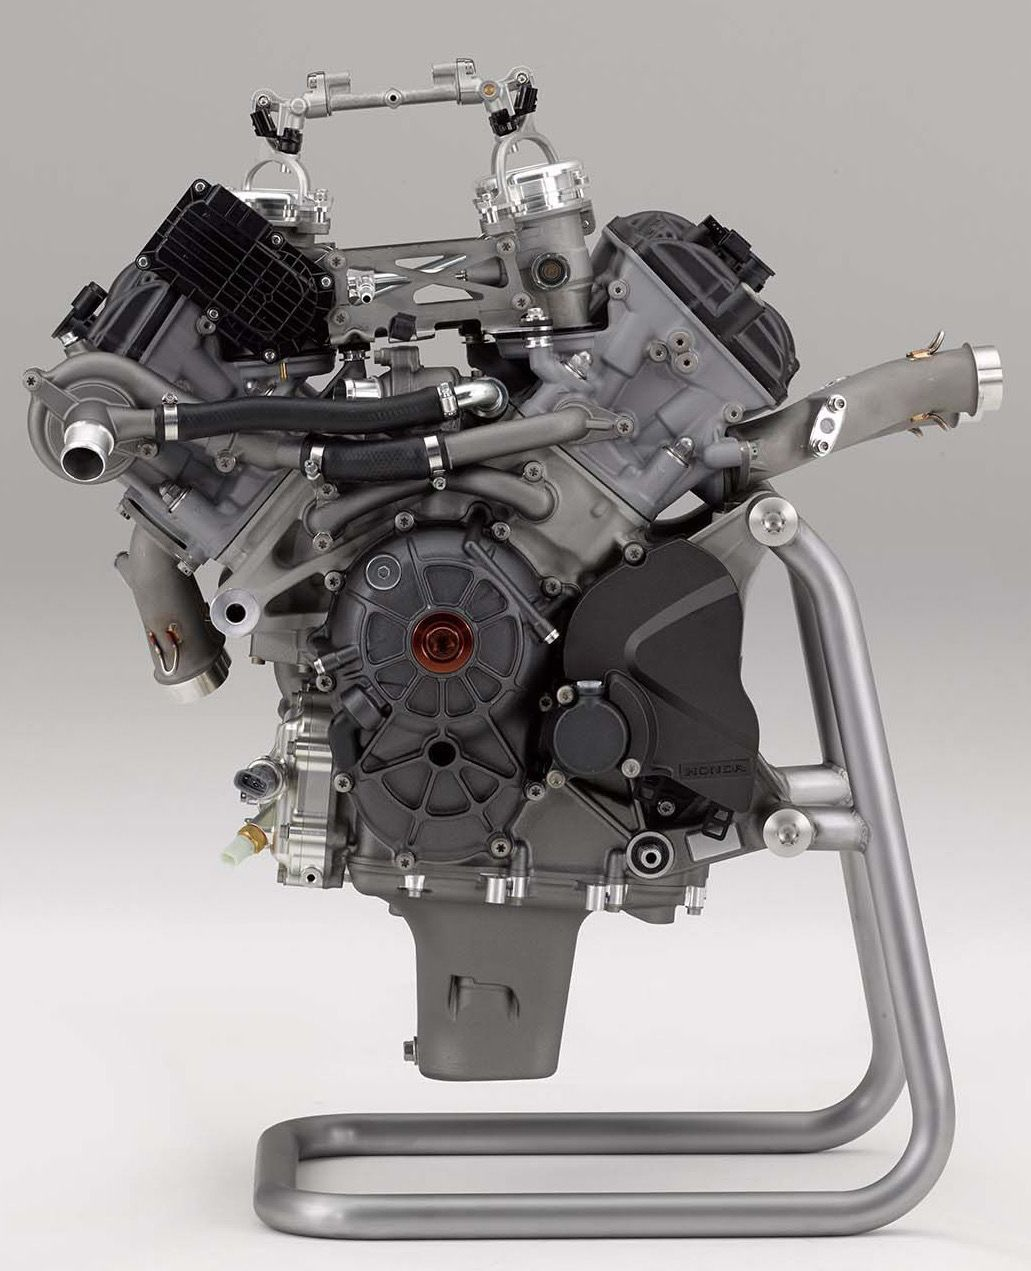 Honda Motorcycle With Fit Engine: The 2016 Honda RC213V-S Will Cost $184,000 In The USA